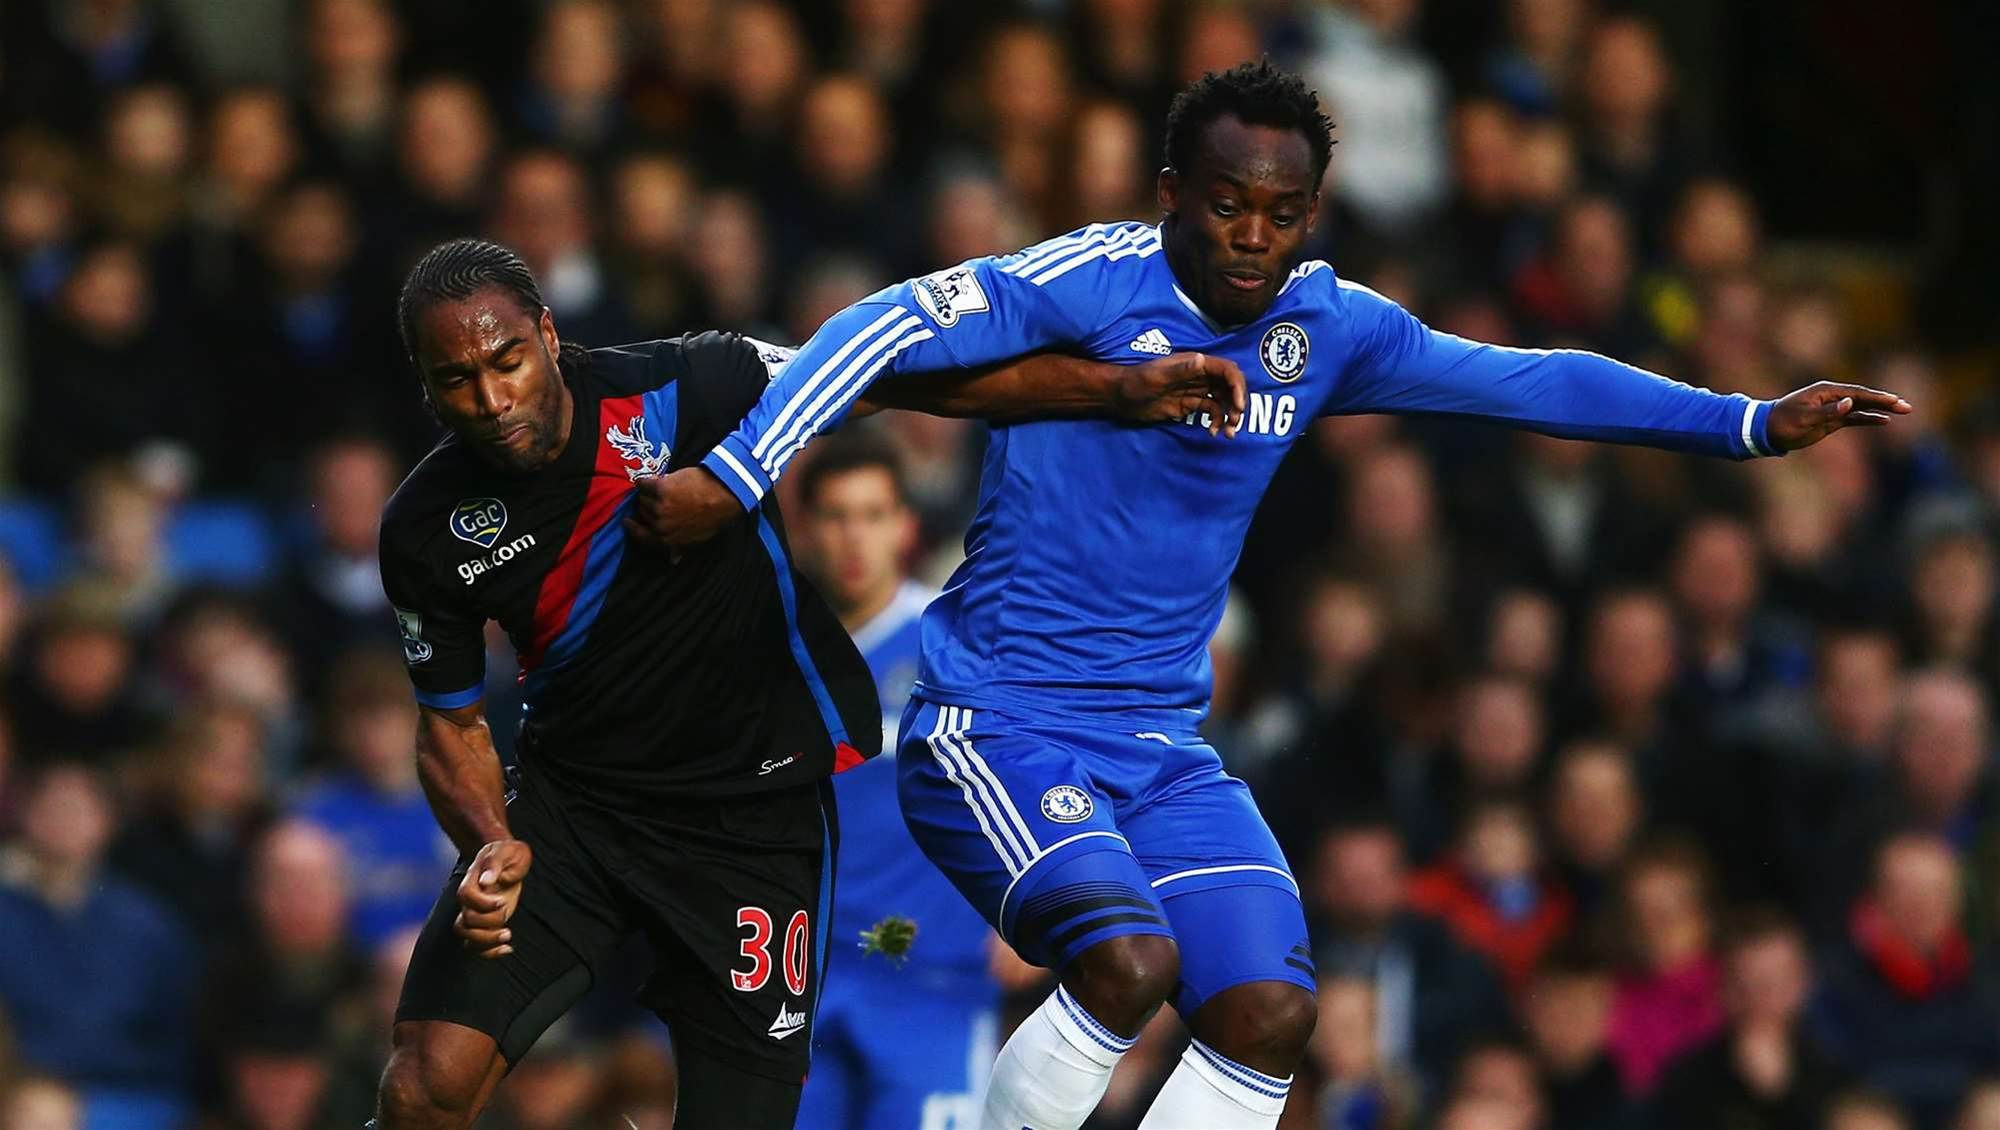 Michael Essien Says No to A-League